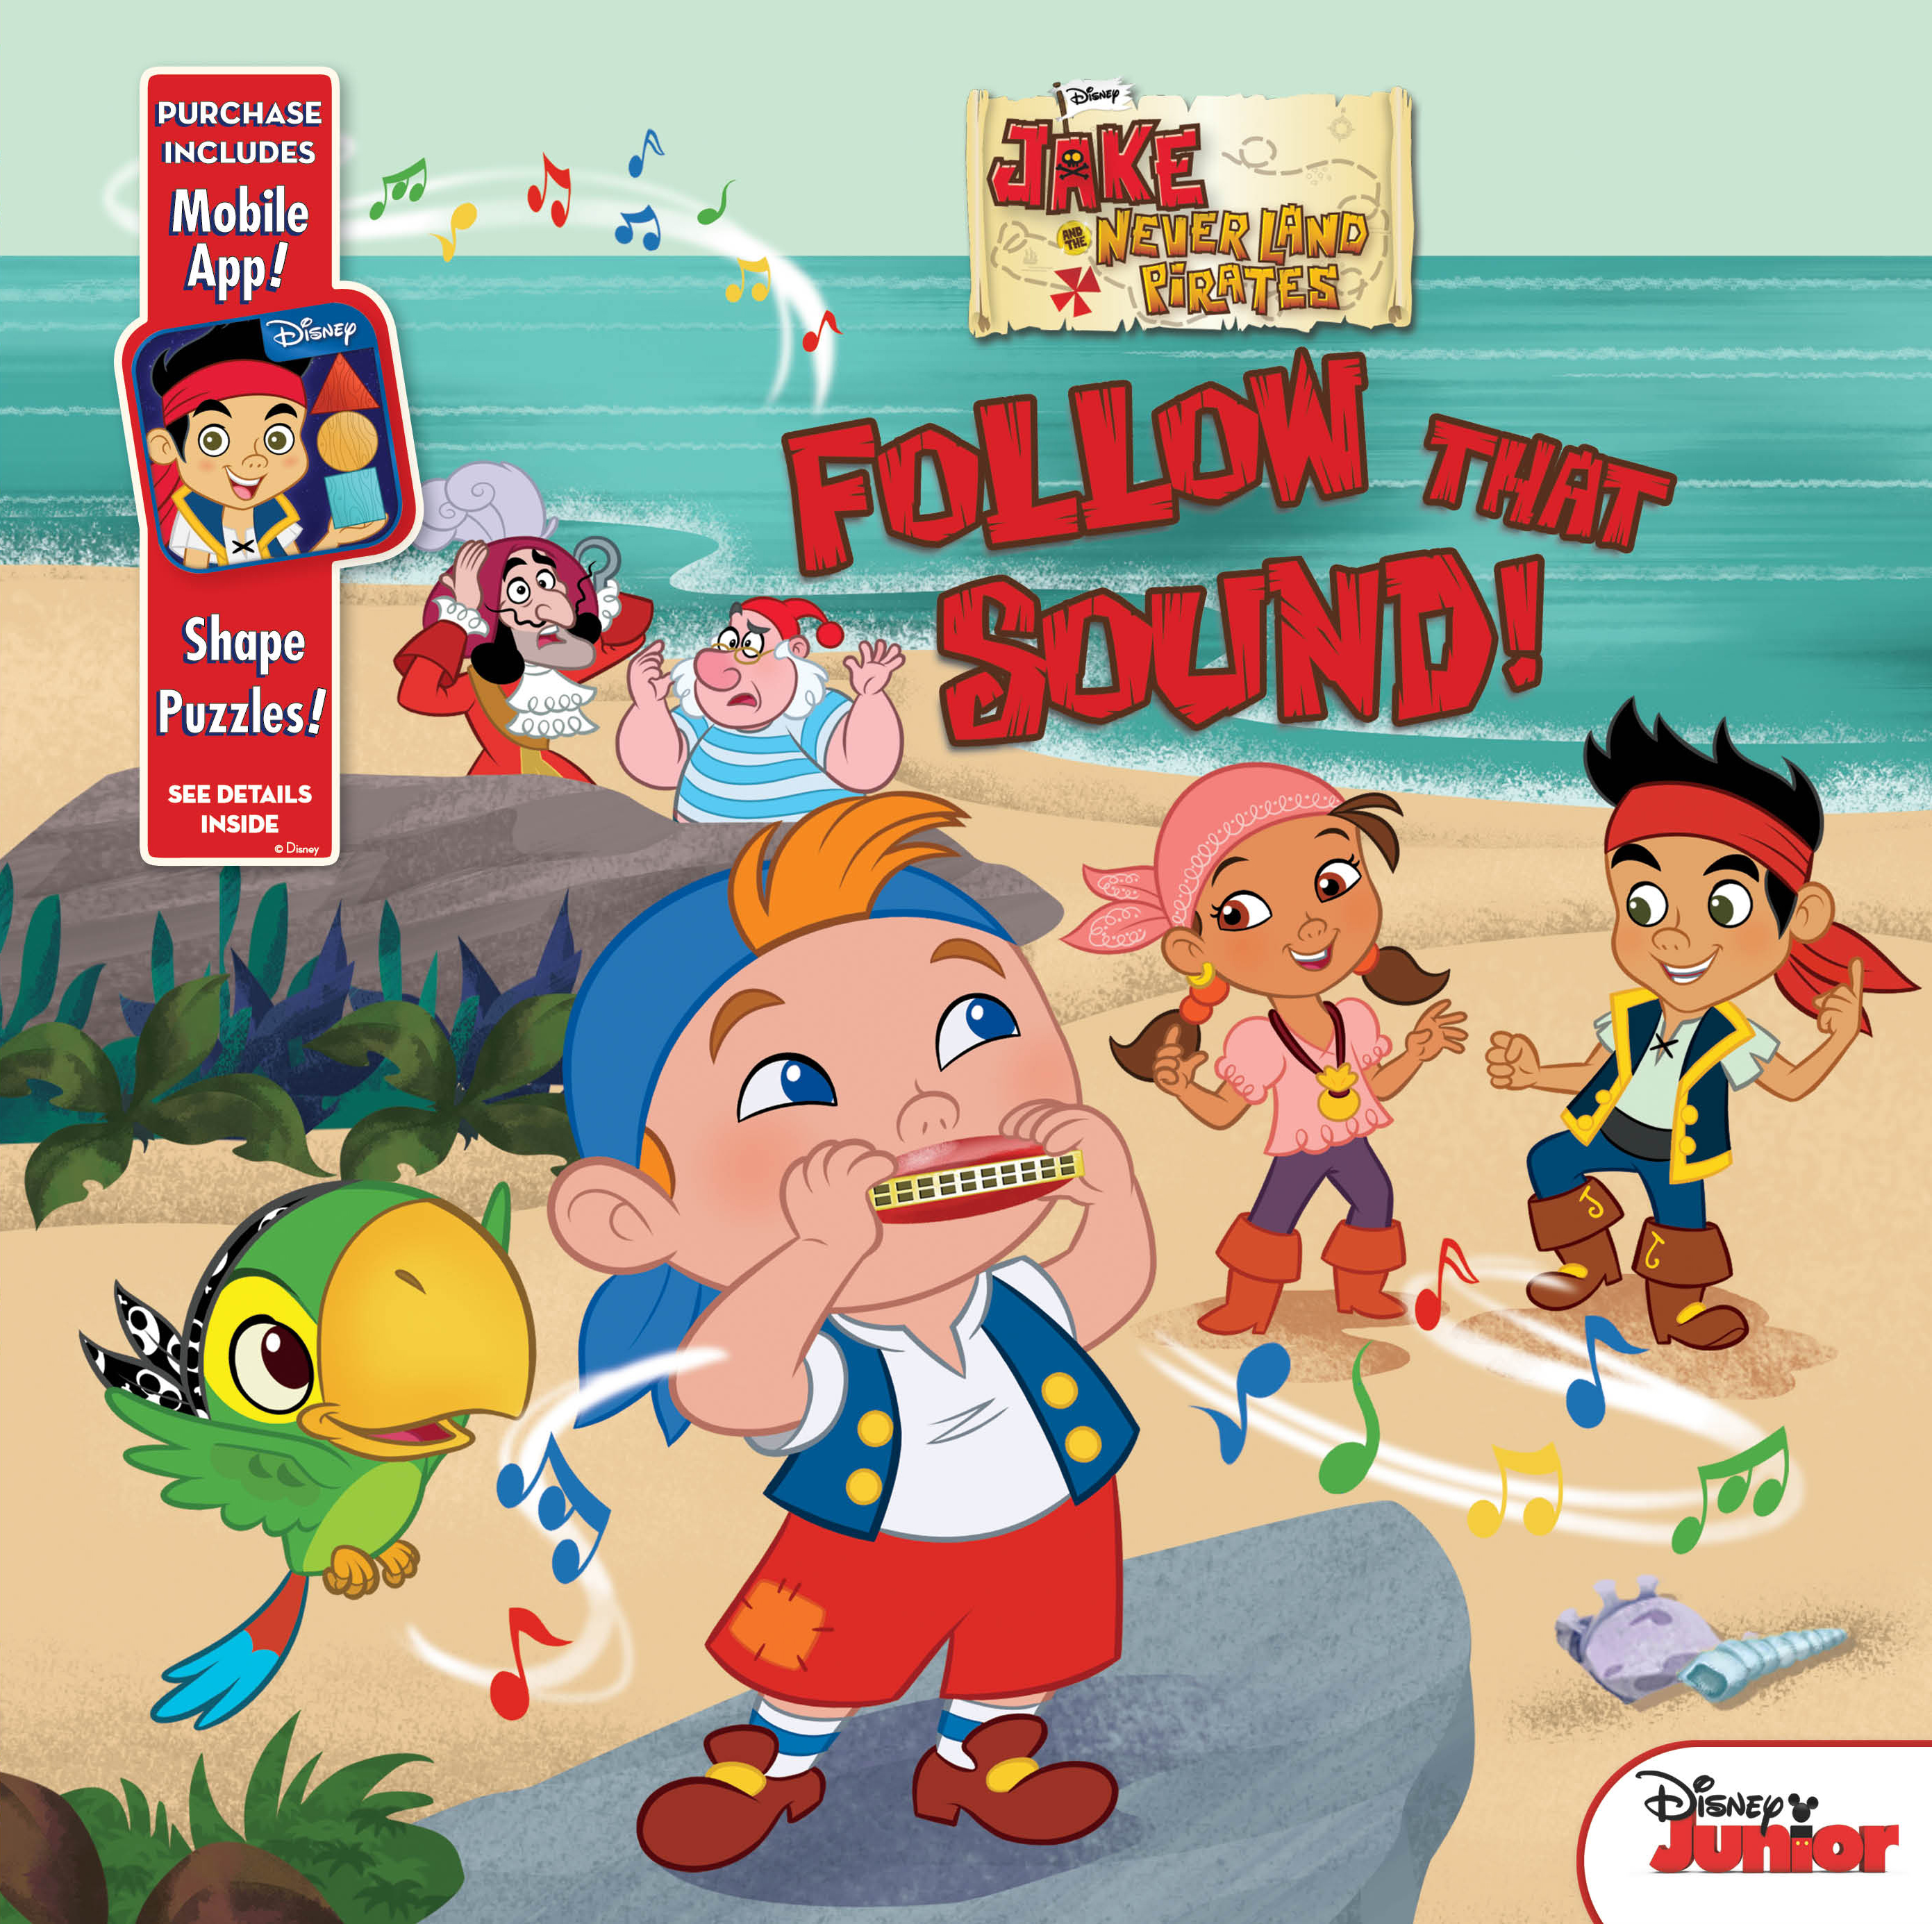 jake and the never land pirates the great treasure hunt disney